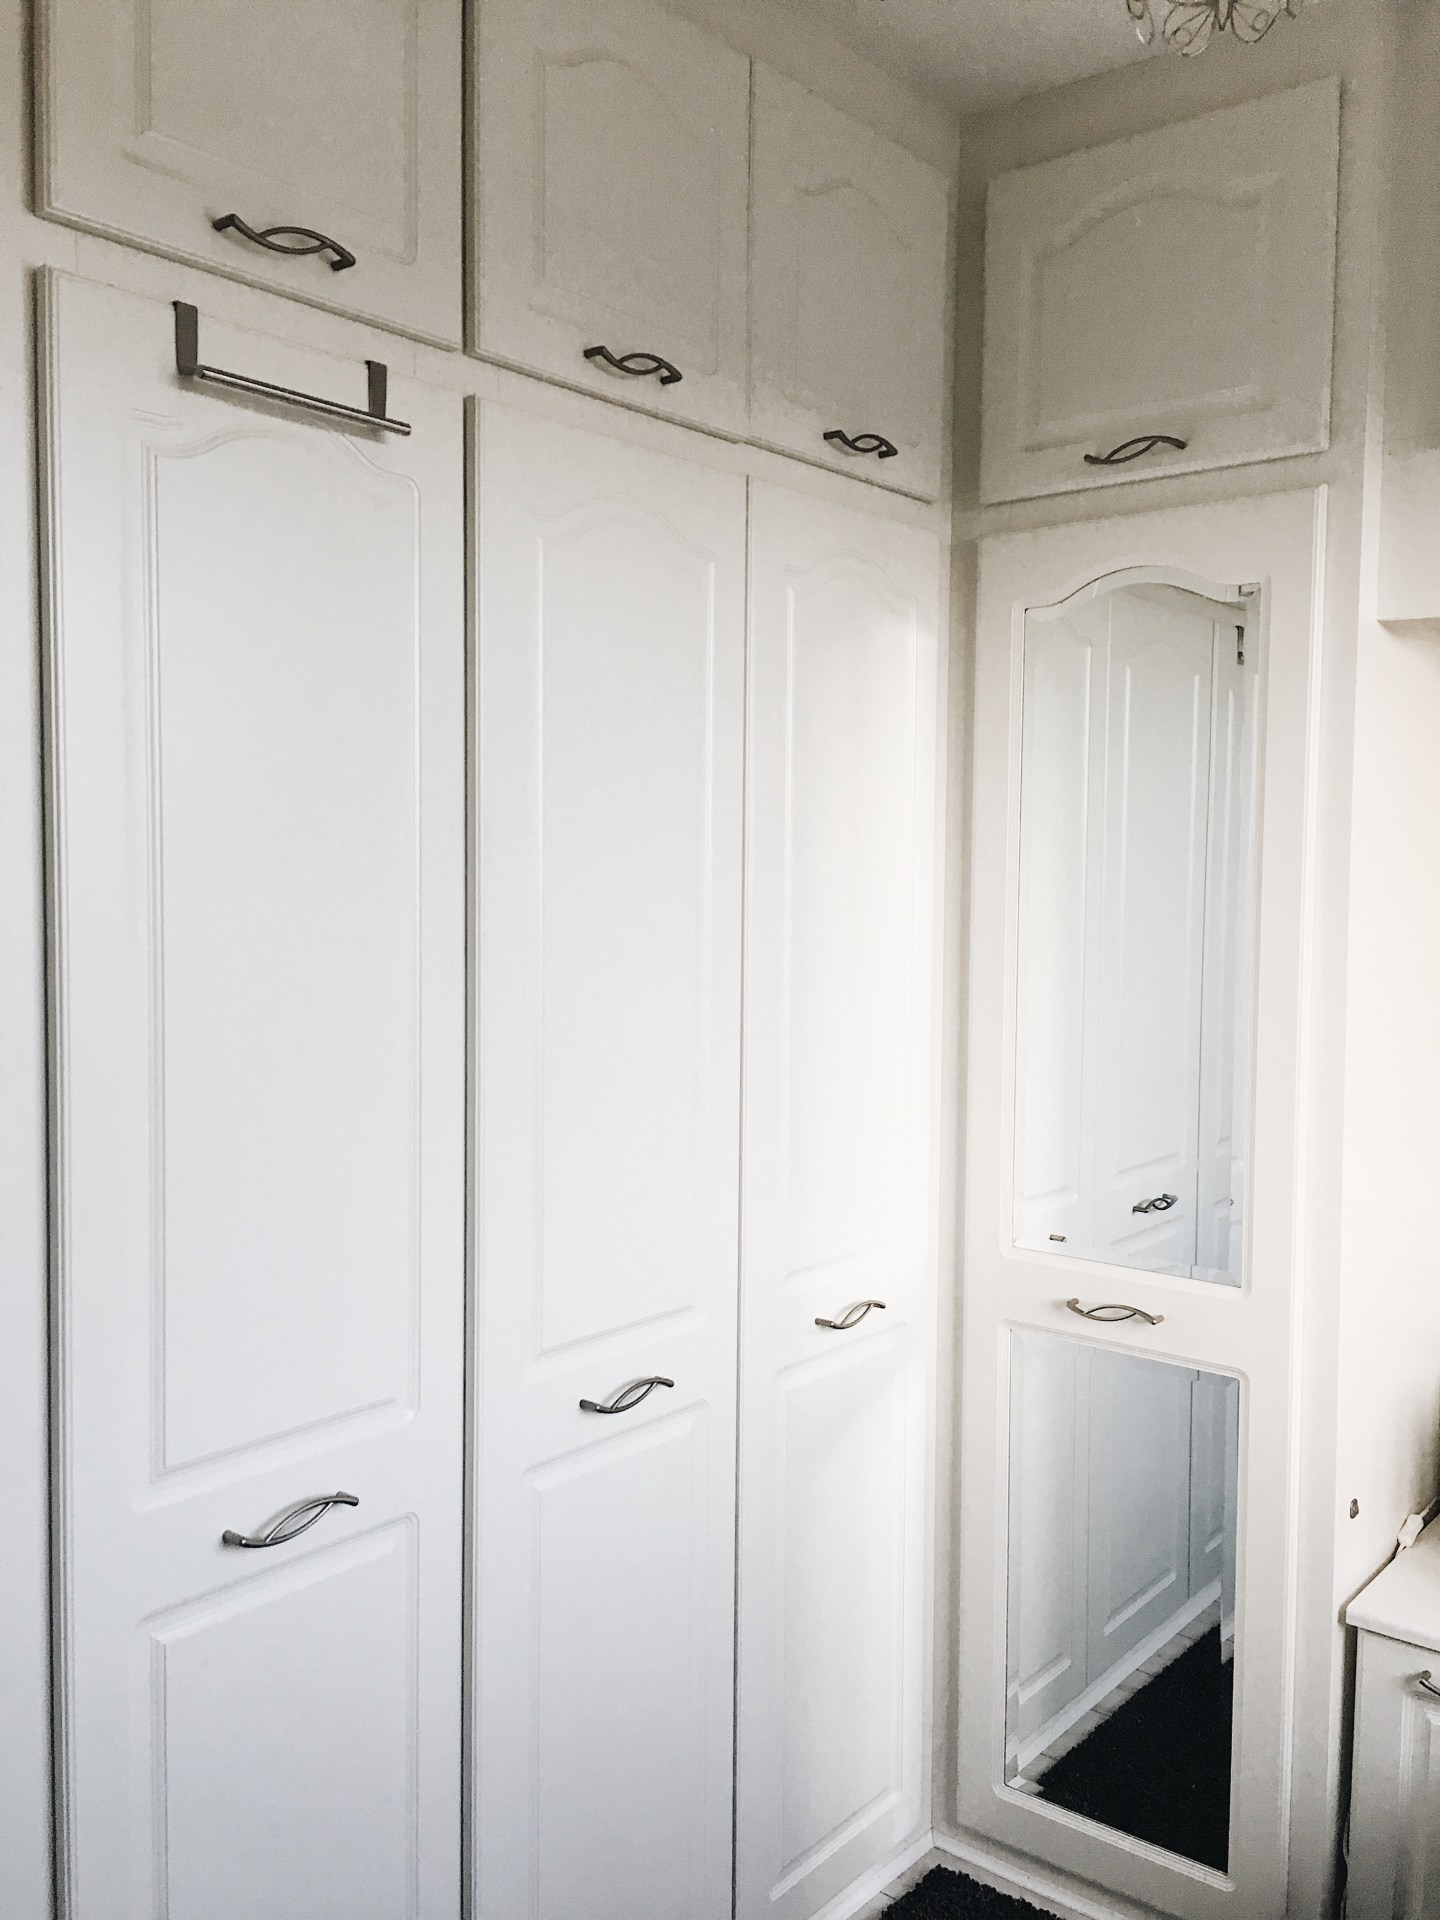 Sharps-Fitting-Wardrobe-In-Small-Bedroom.JPG